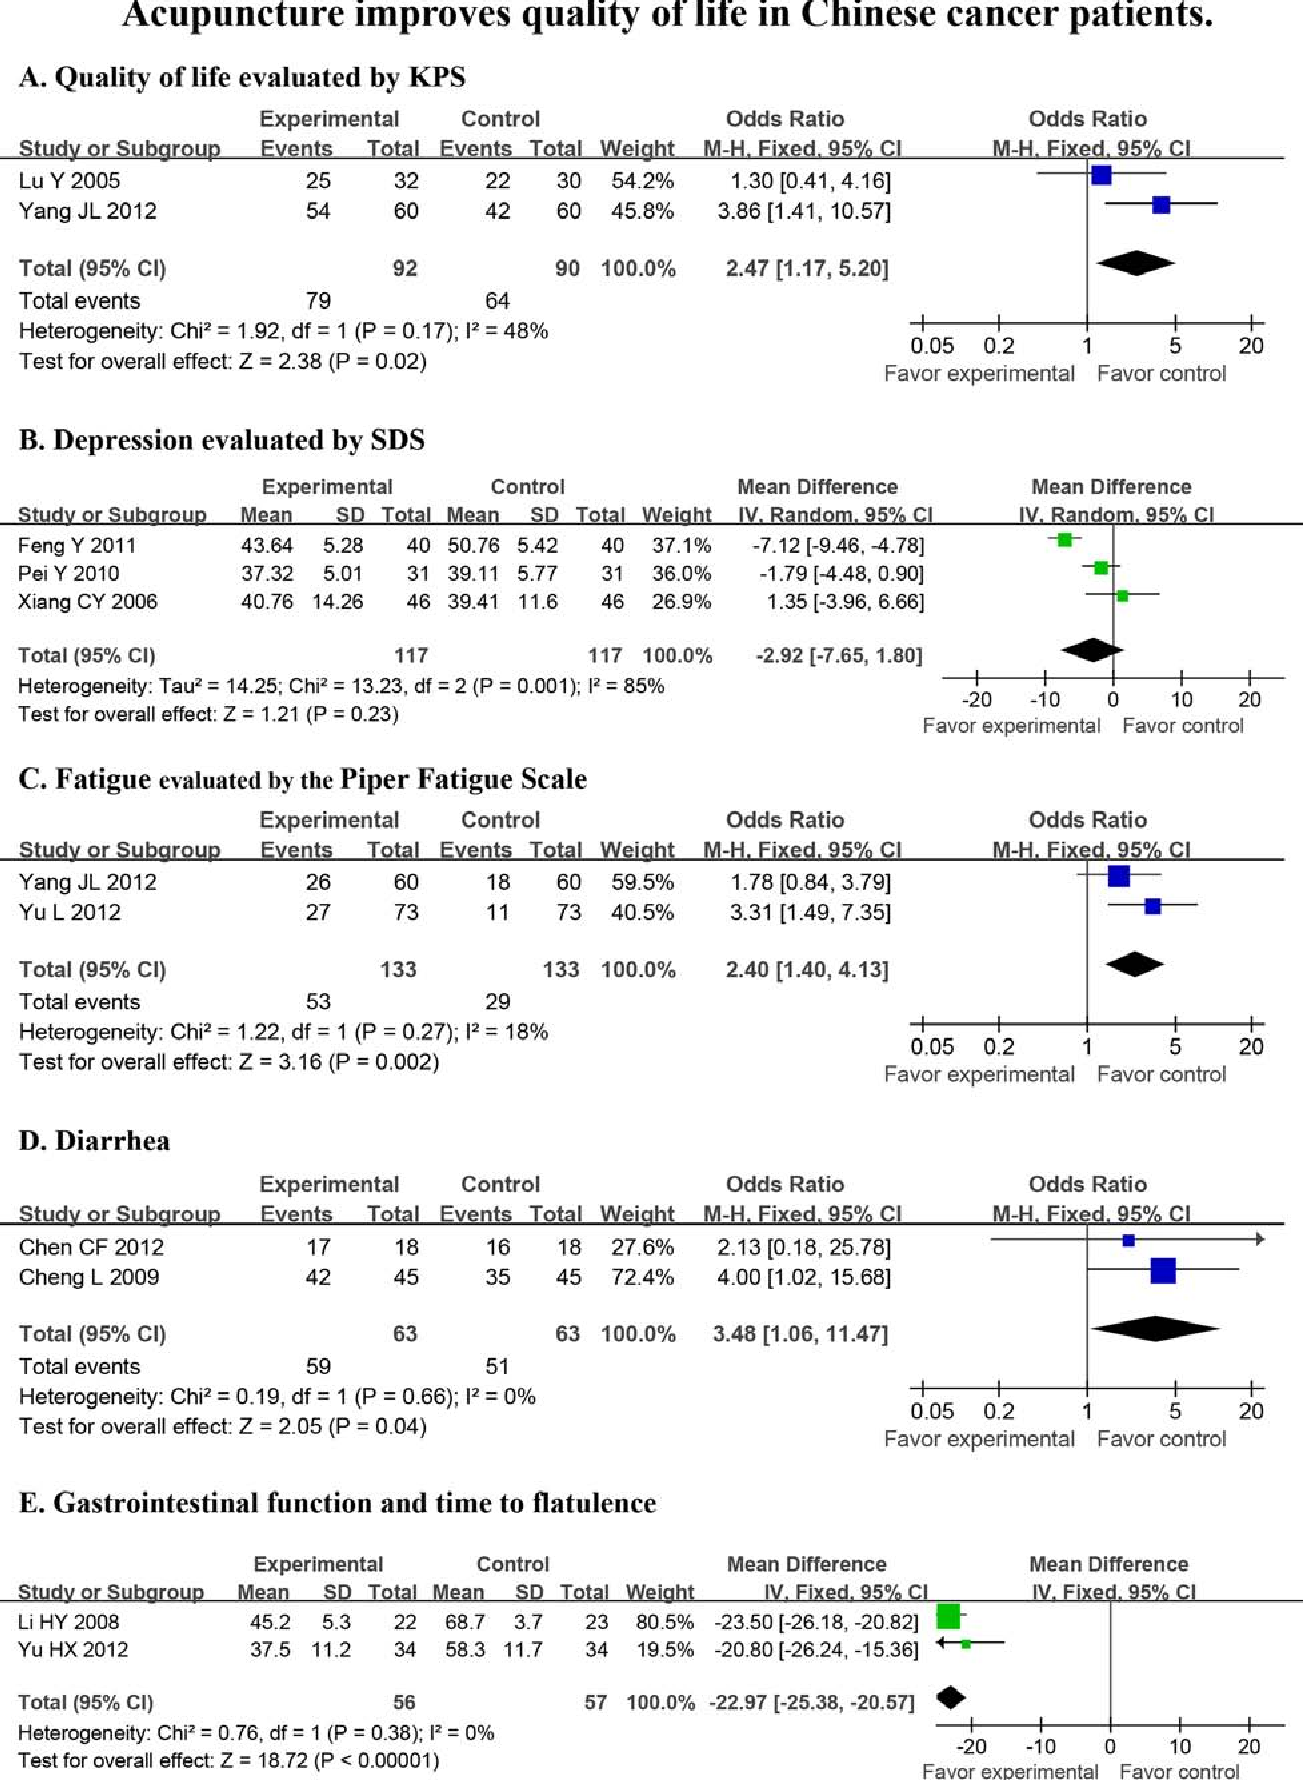 Figure 2: Acupuncture improves quality of life in Chinese cancer patients. Quality of life (KPS), depression (SDS), fatigue, diarrhea and time to flatulence were evaluated in a statistical model that used random effects.